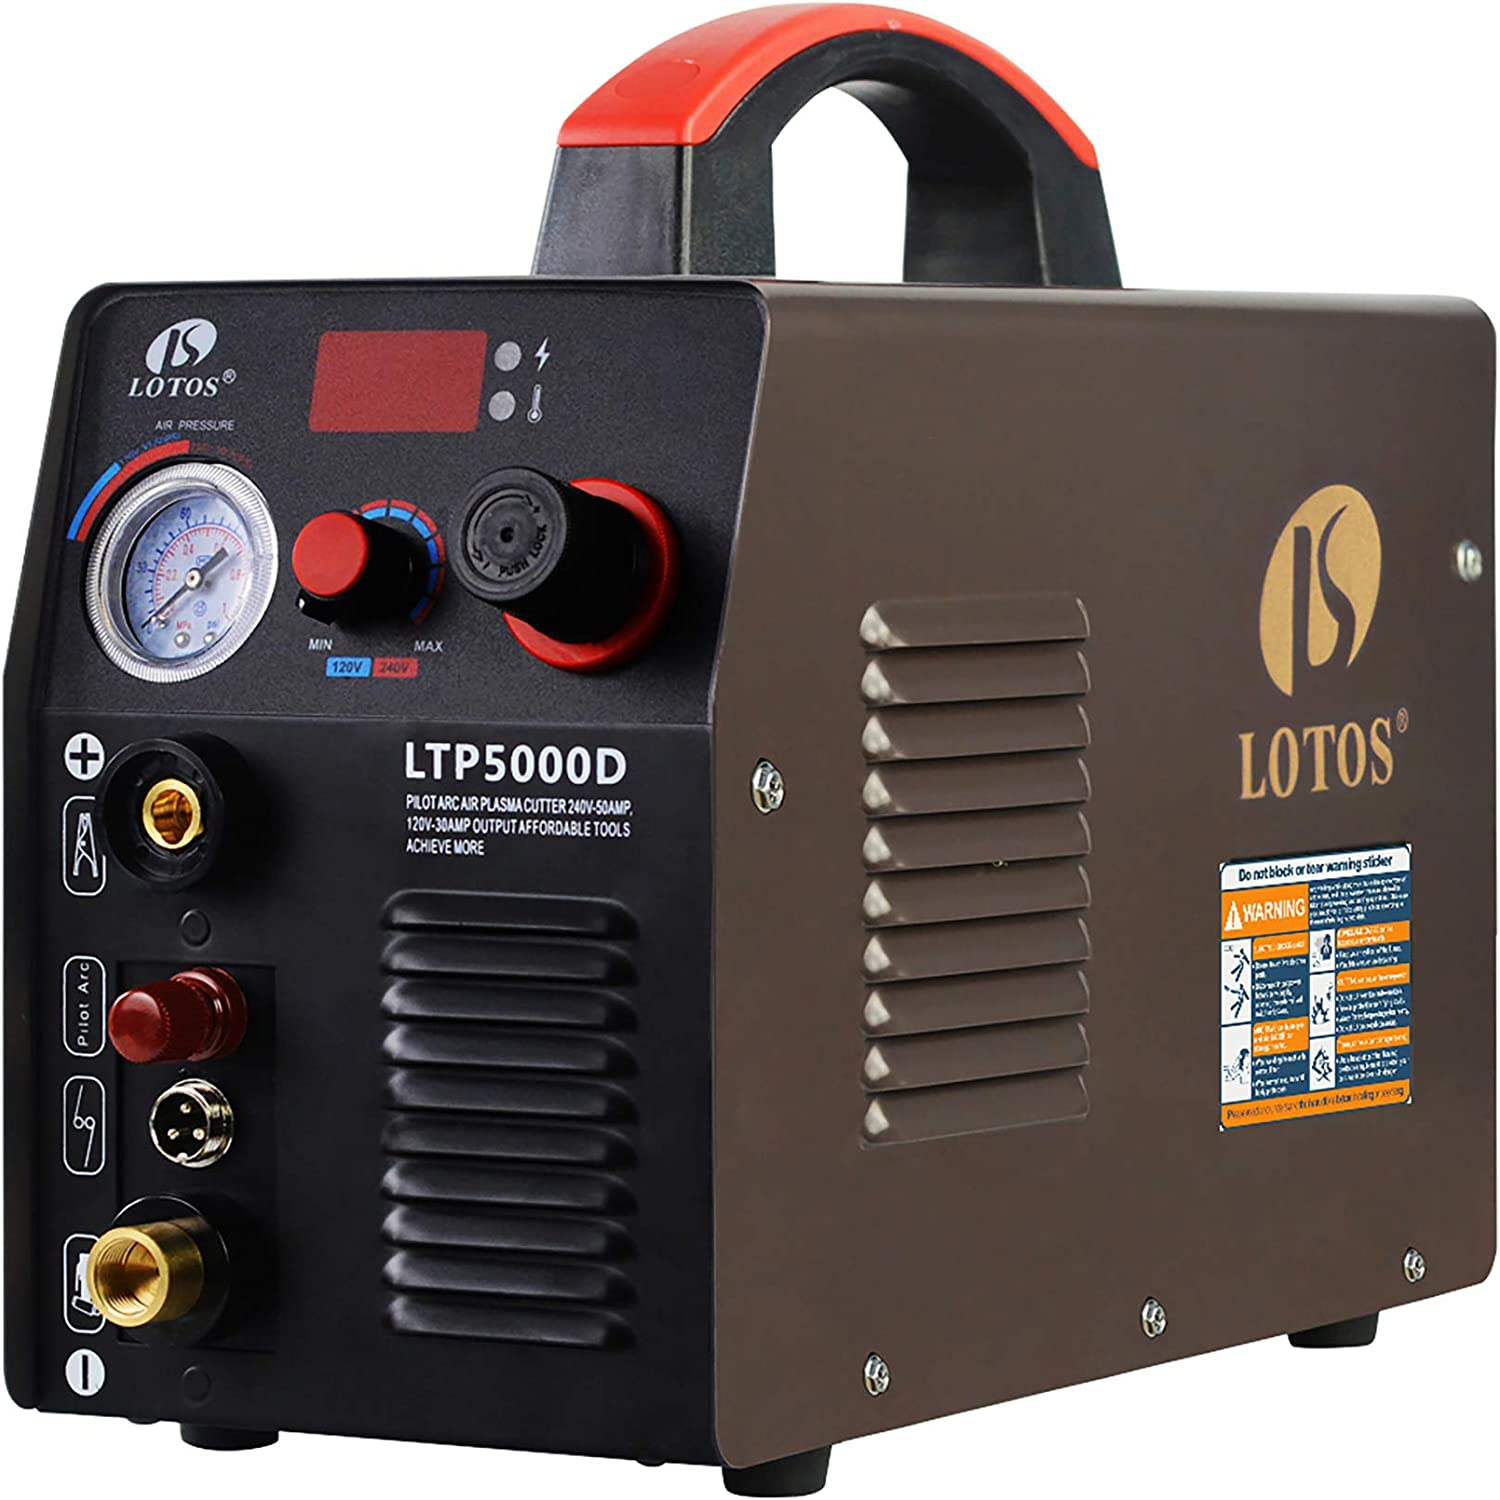 #1 Lotos Technology Non-Touch 50A Pilot Arc Plasma Cutter